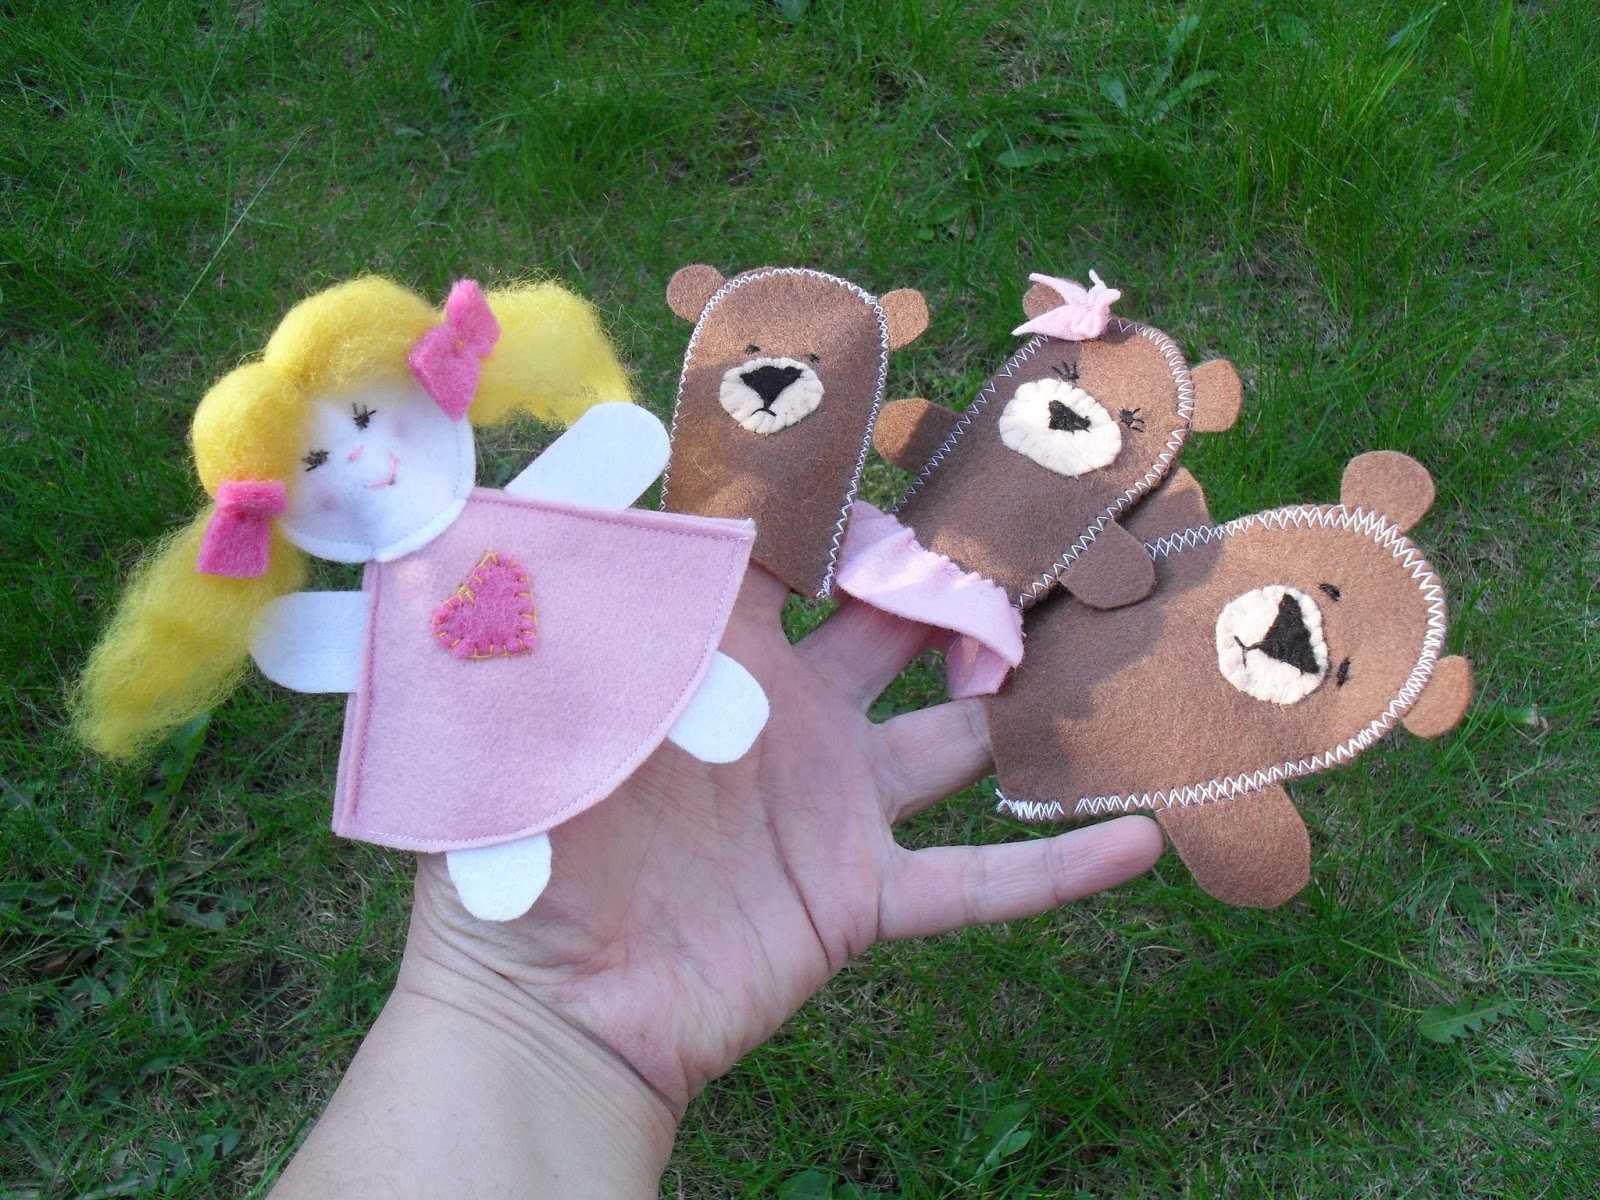 Custom Golf headcovers and puppets : Felt Finger puppets -my new ...